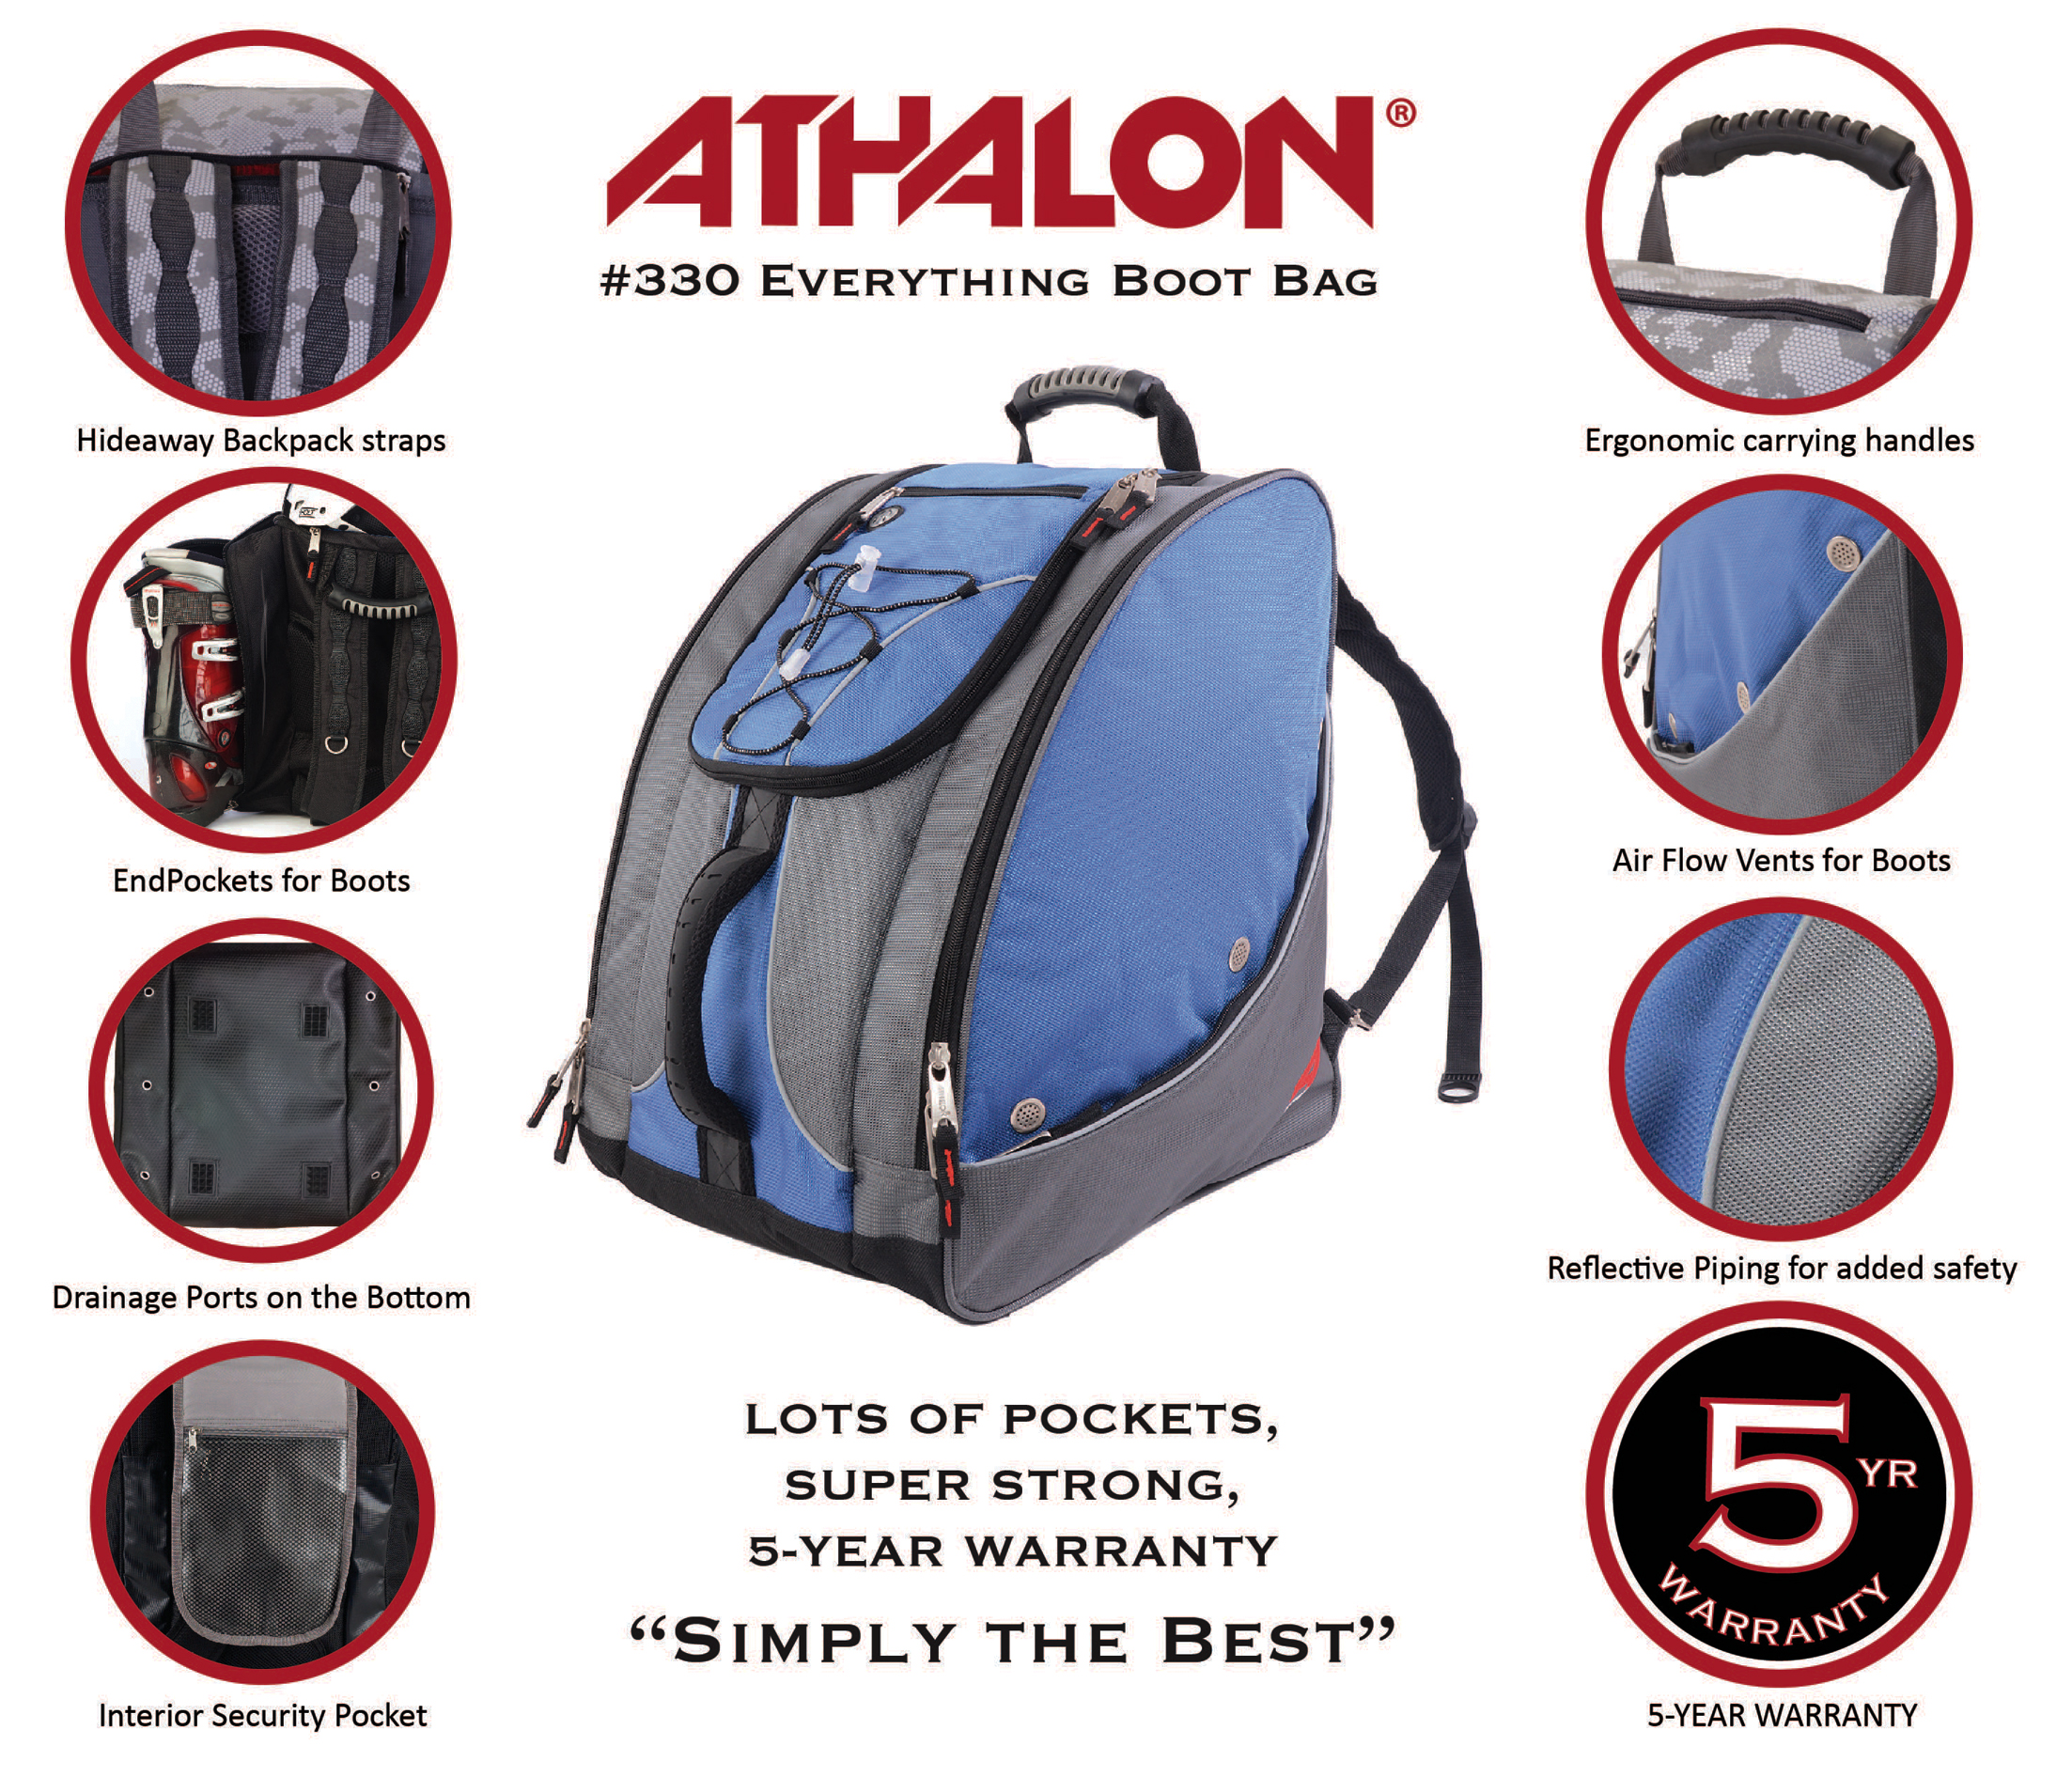 fe2803a60f athalon everything boot bag - Walmart.com